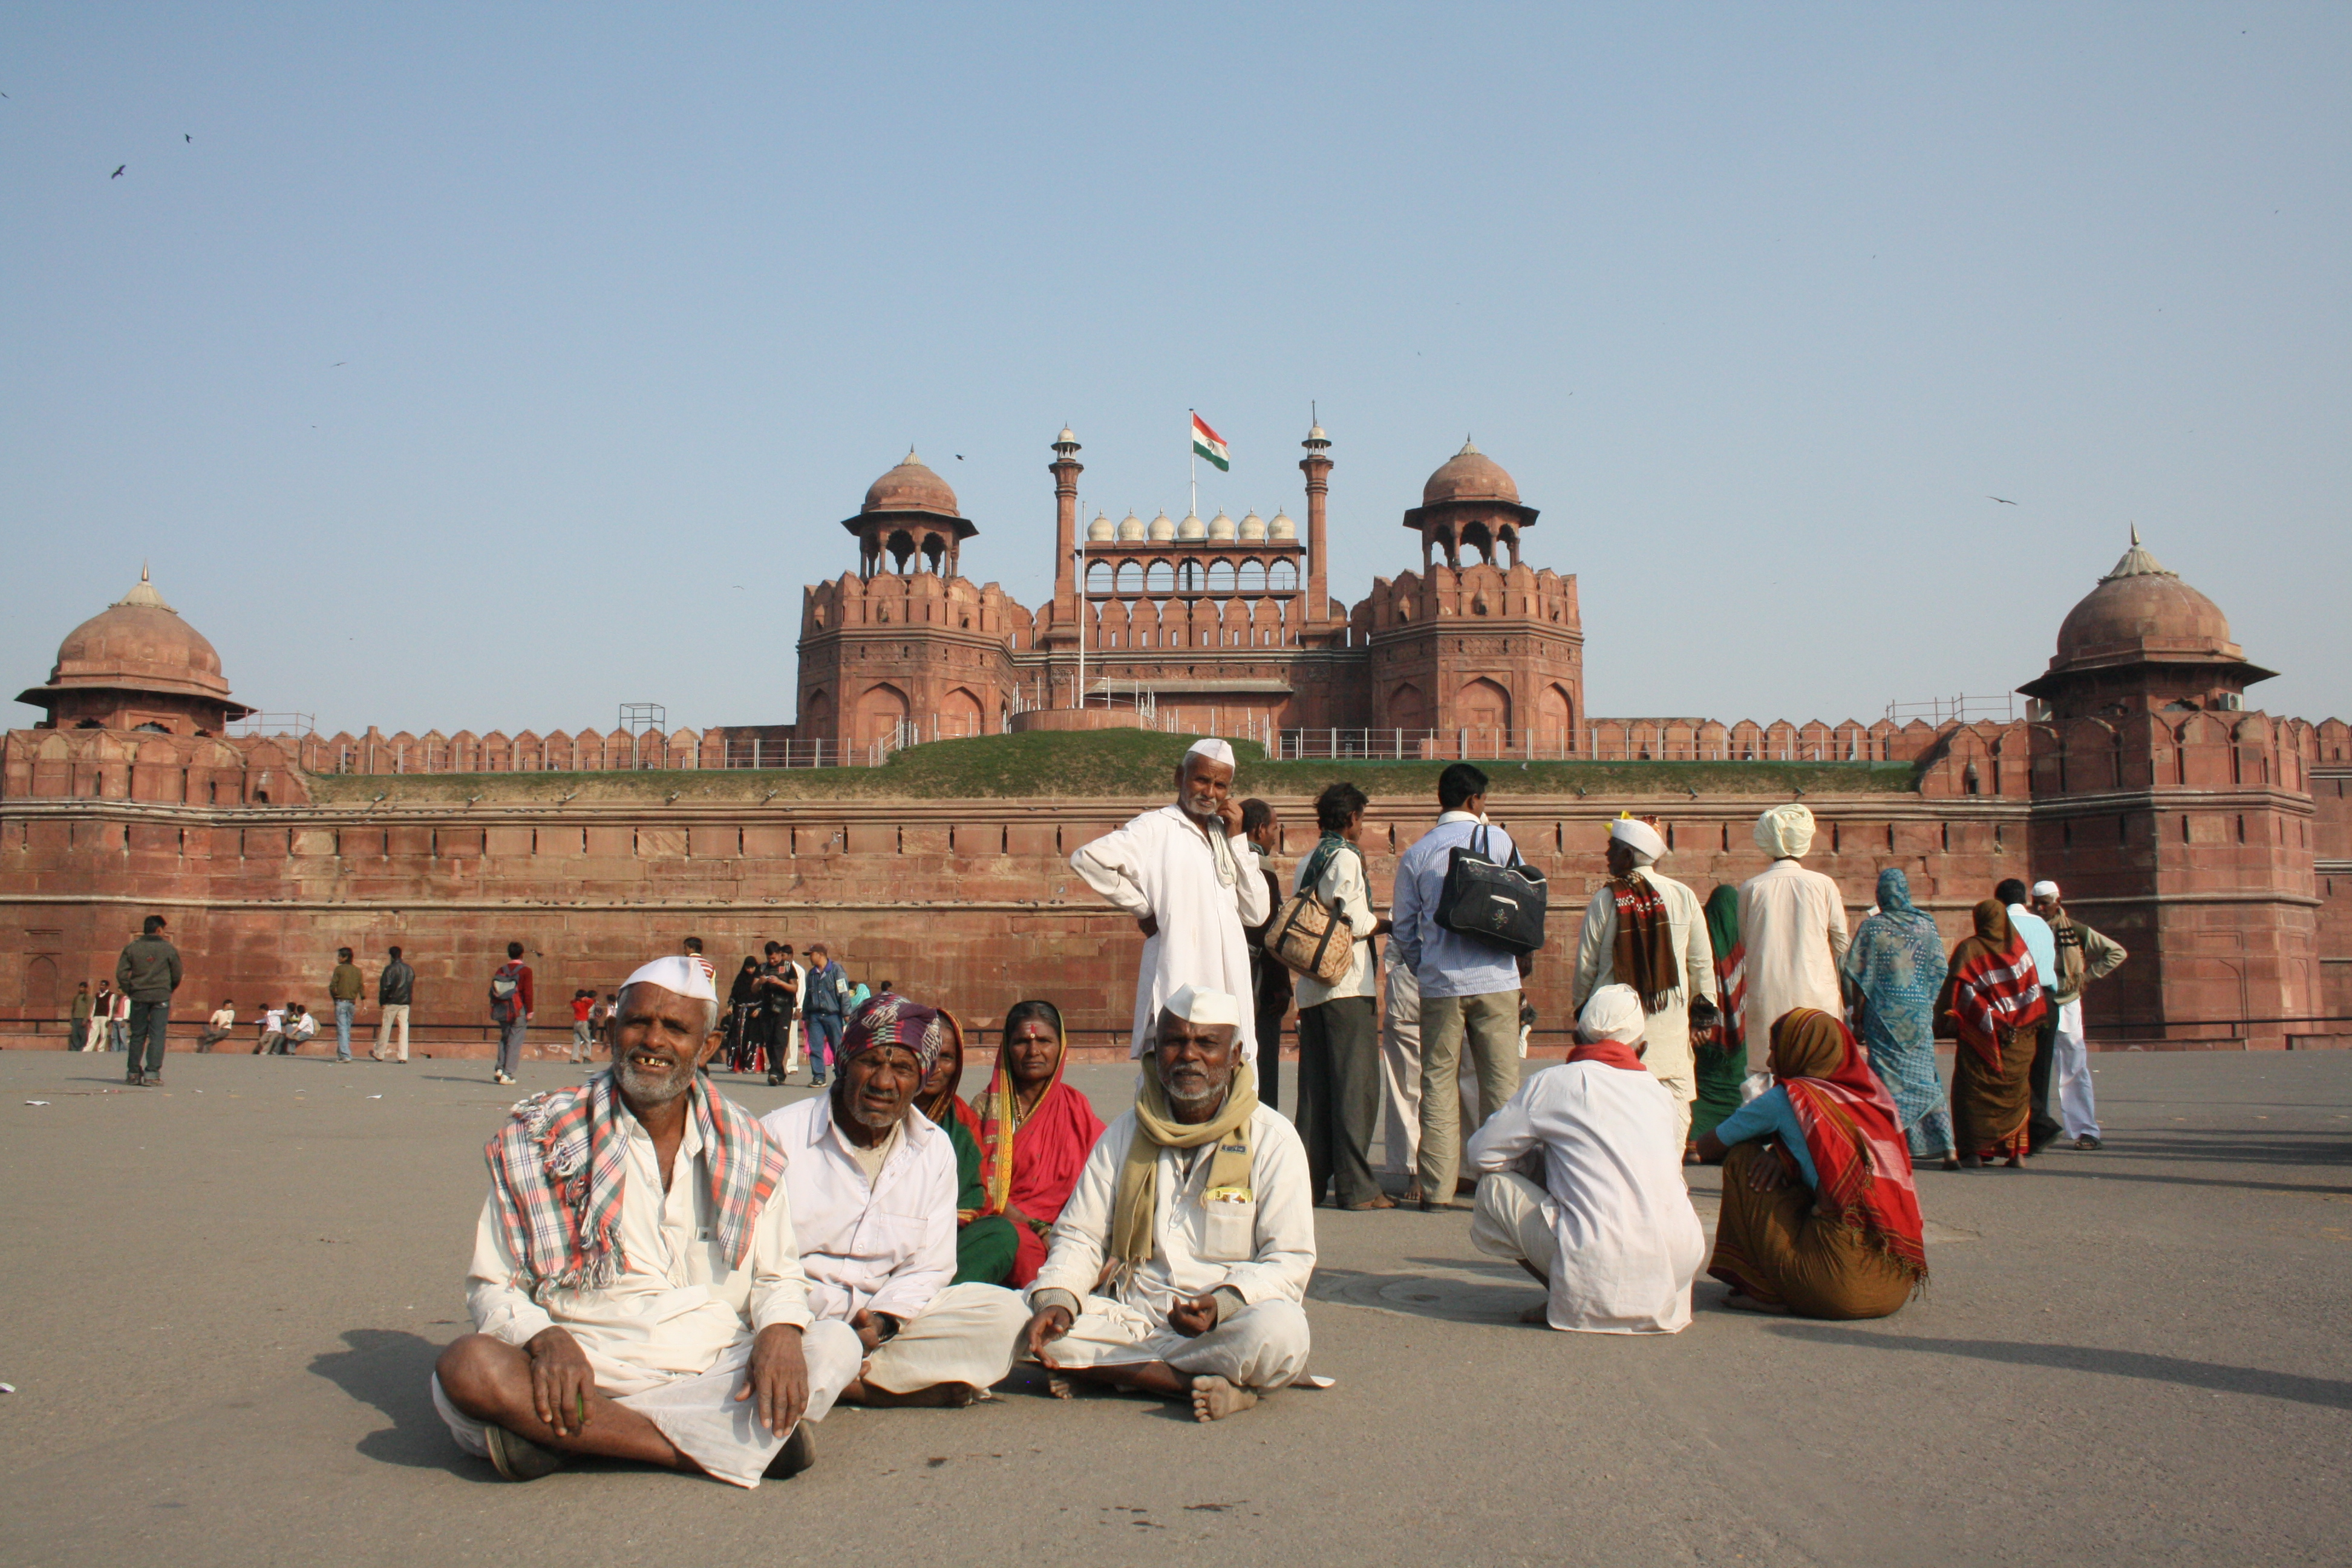 City List - Surviving Landmarks, Red Fort